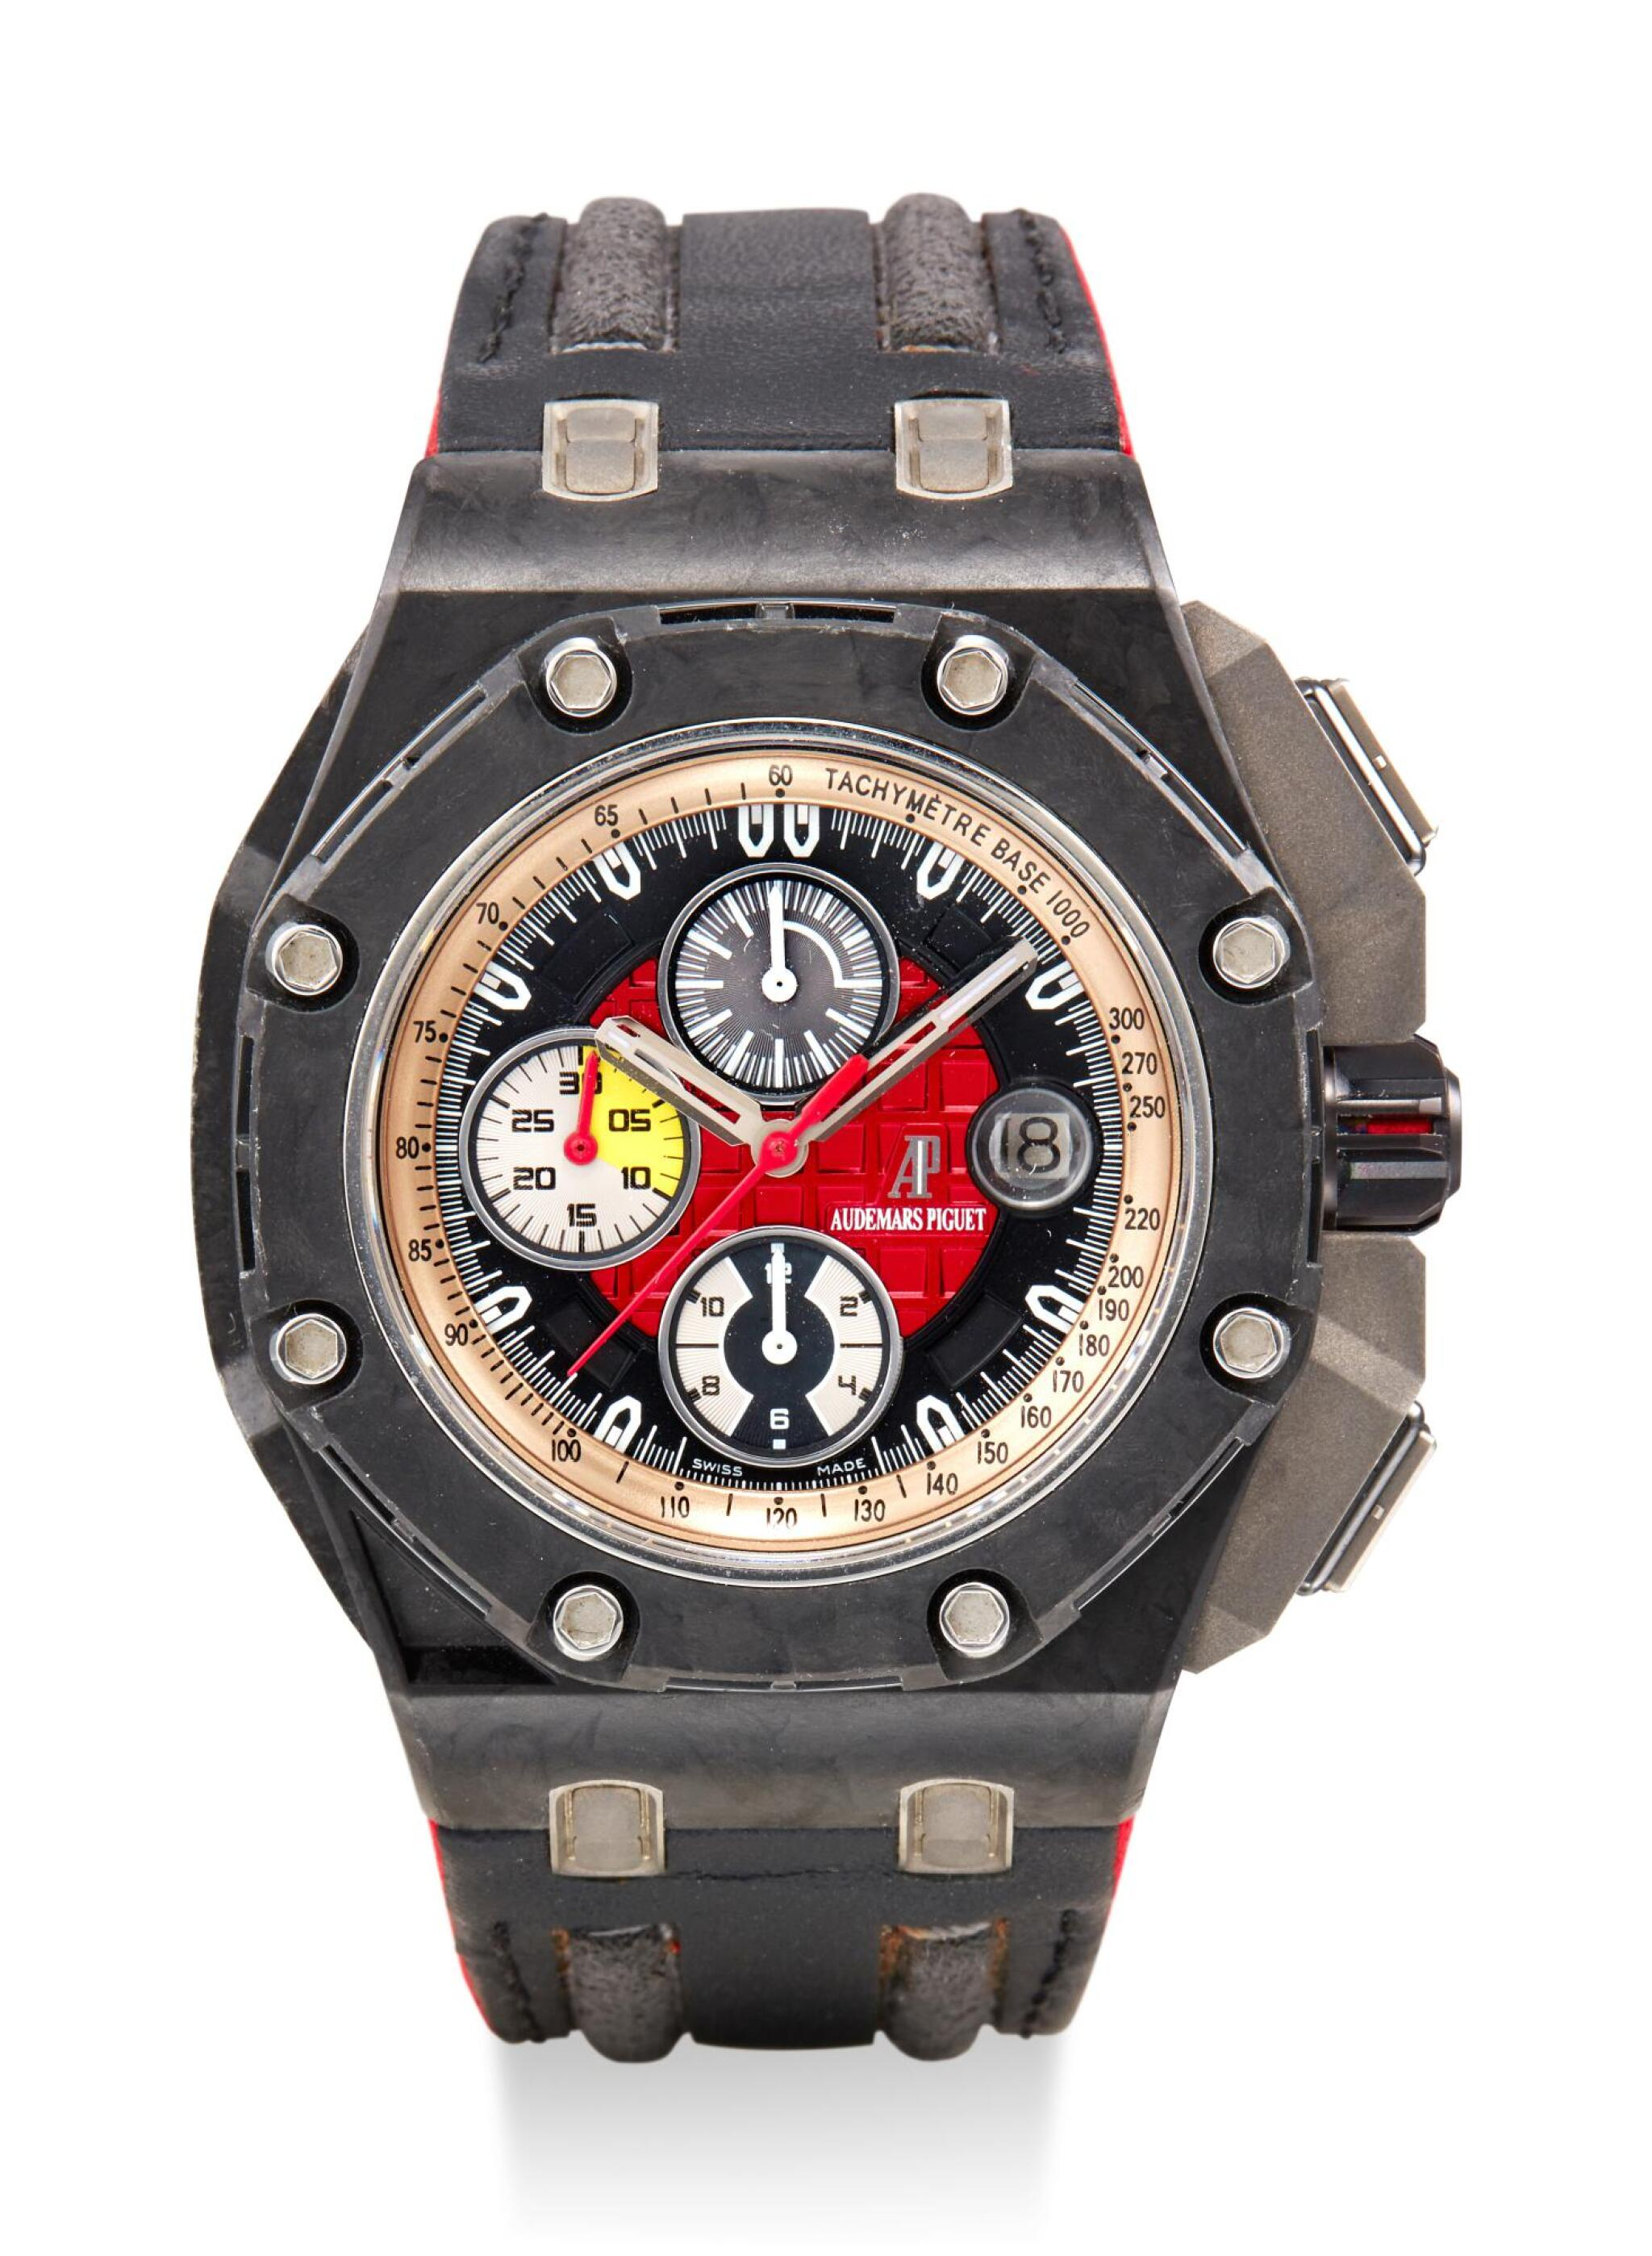 View full screen - View 1 of Lot 8129. AUDEMARS PIGUET   ROYAL OAK OFFSHORE GRAND PRIX, REFERENCE 26290IO.OO.A001VE.01,  A LIMITED EDITION CERAMIC, FORGED CARBON AND TITANIUM CHRONOGRAPH WRISTWATCH WITH DATE, CIRCA 2010.